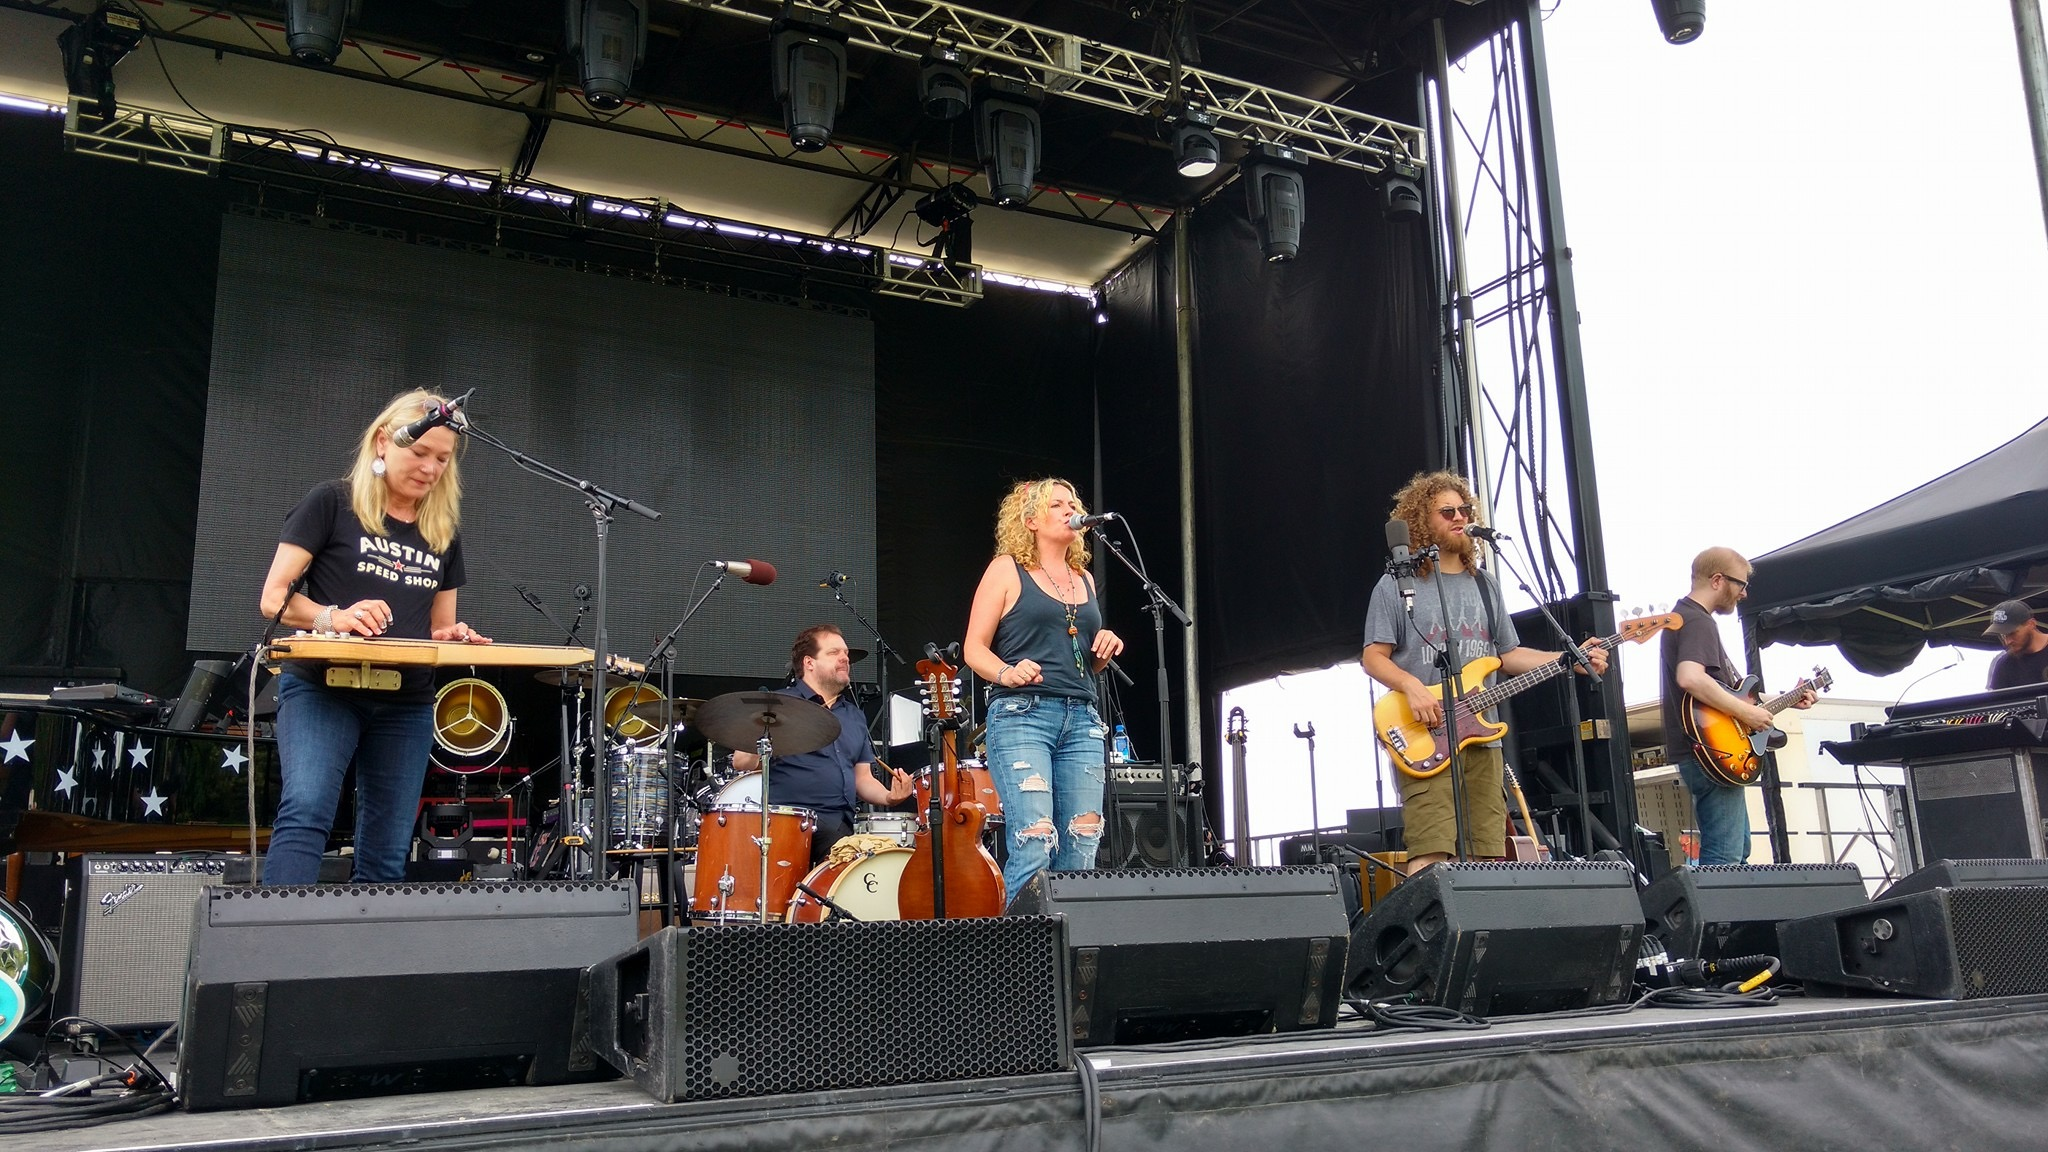 Playing a festival with Amy Helm, Jay Bellerose, Cindy Cashdollar and Adam Minkoff